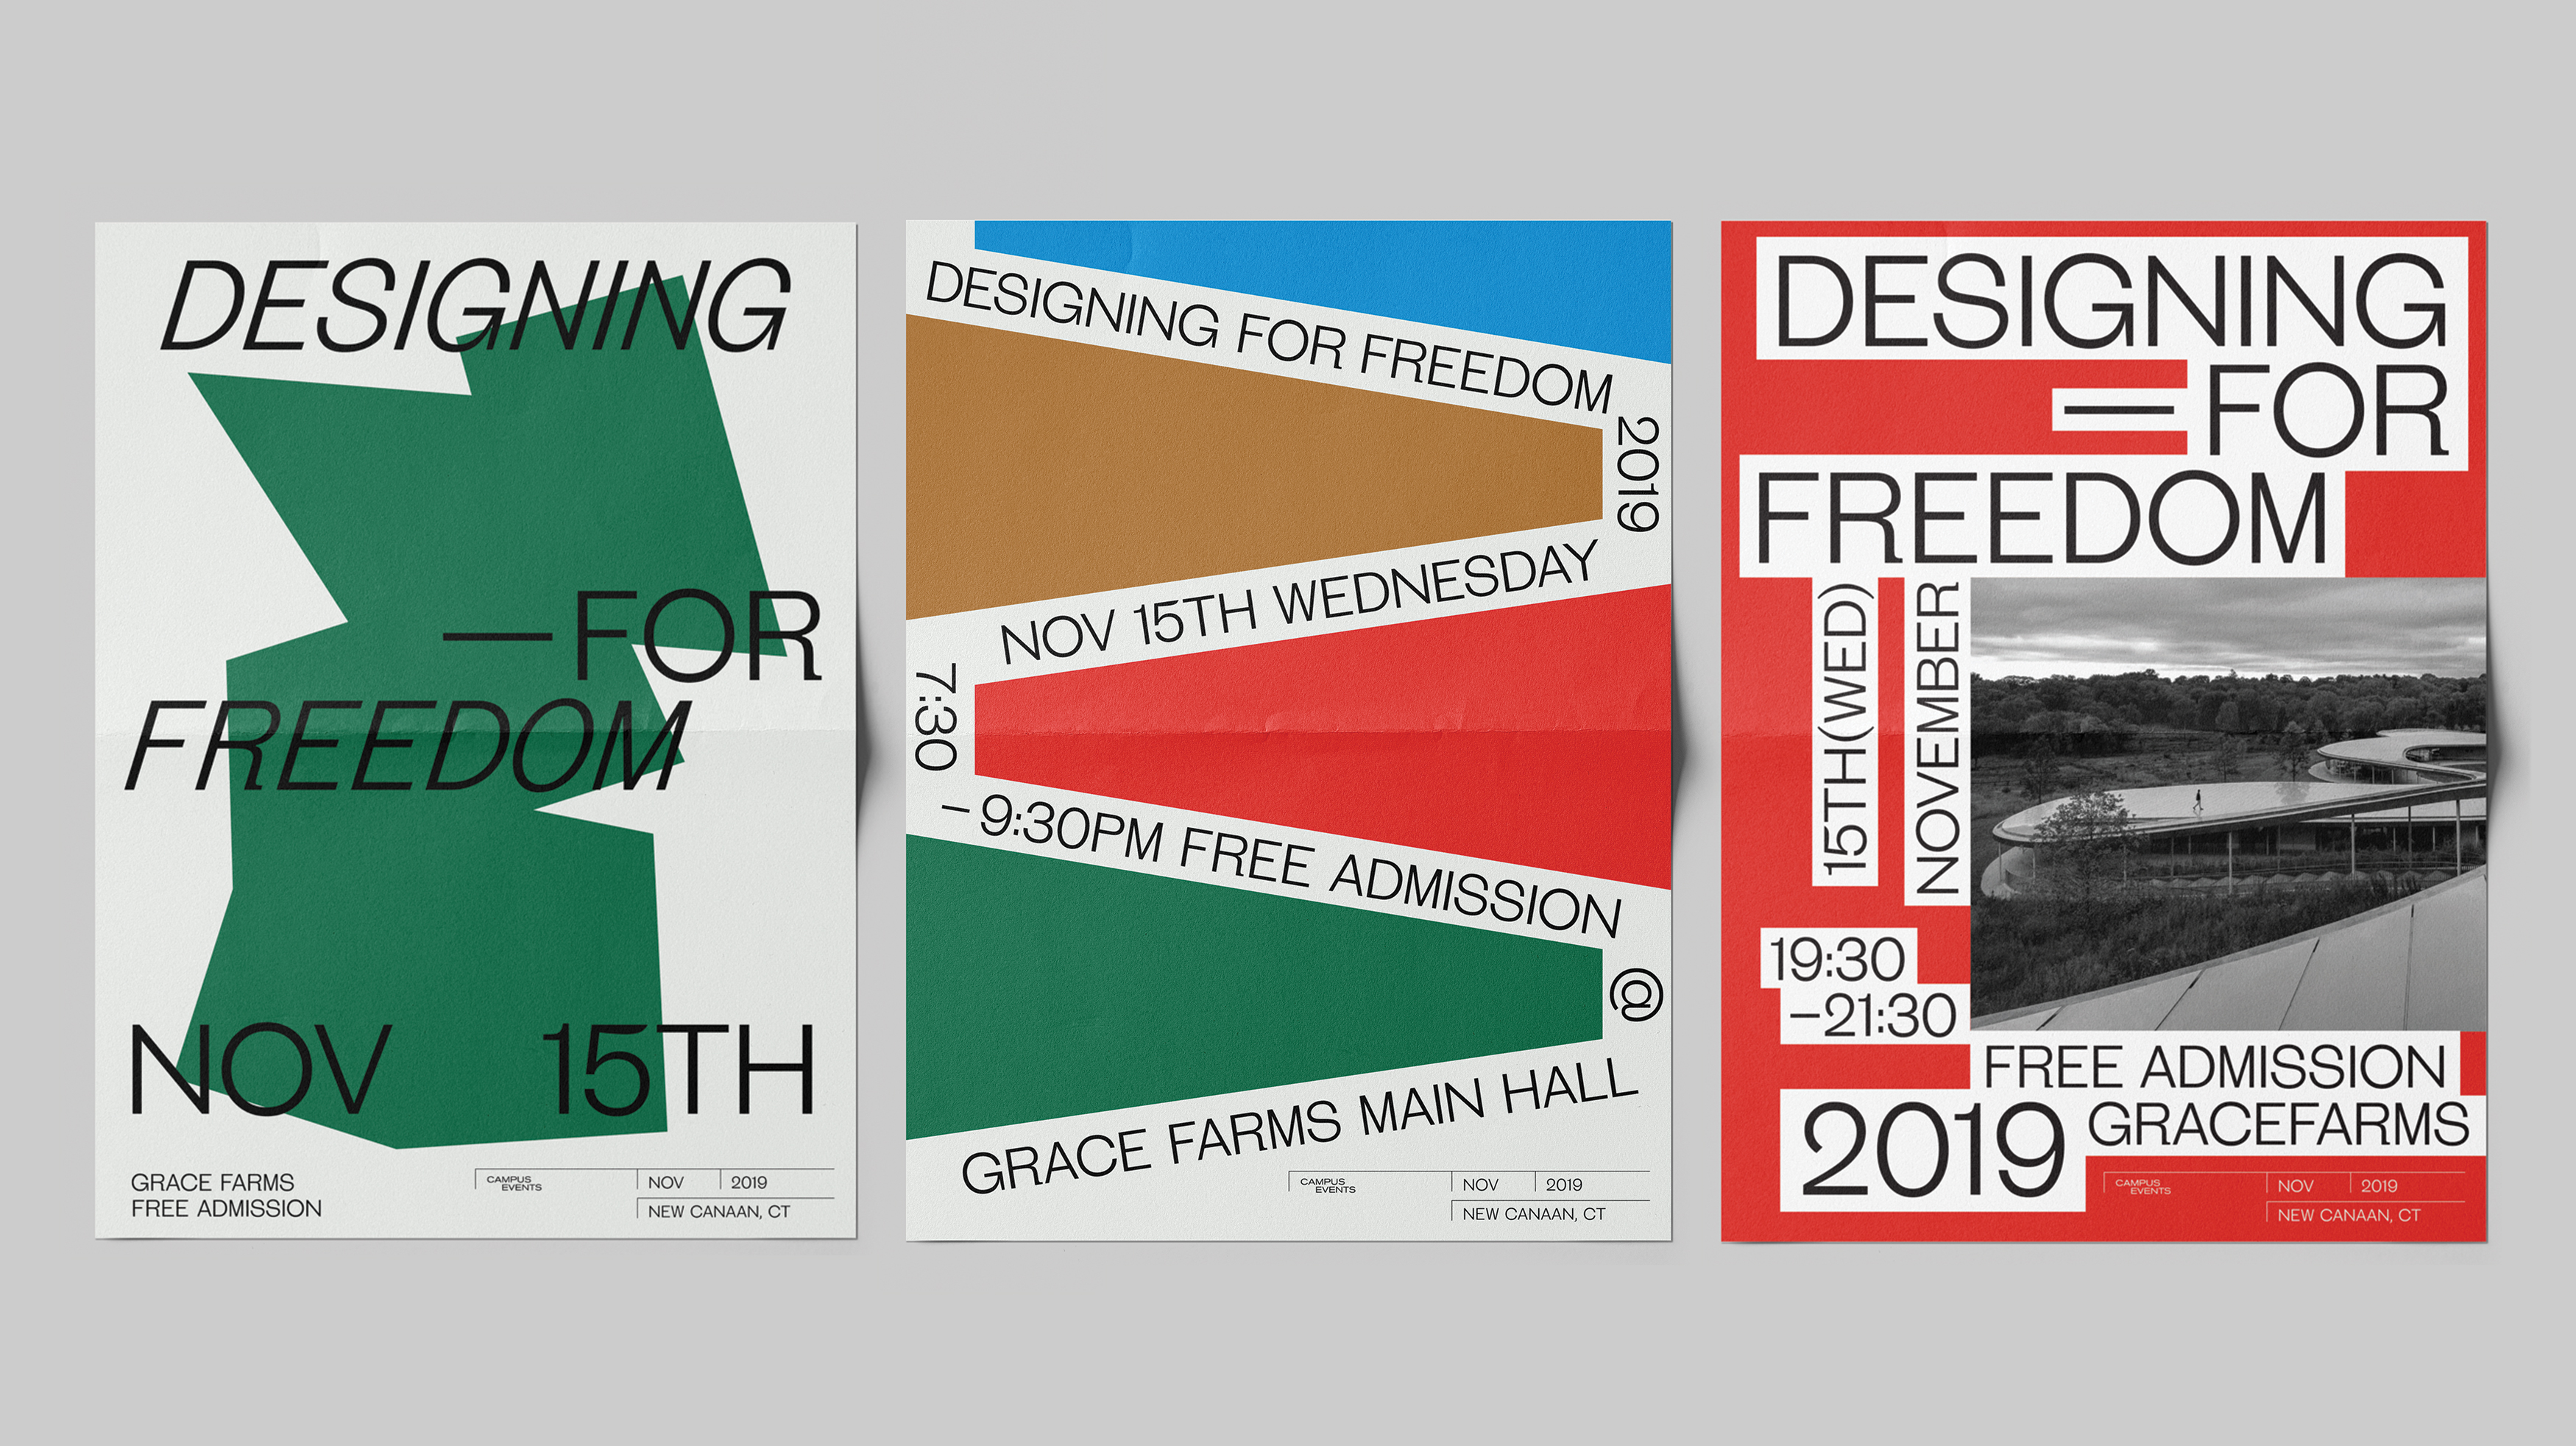 Designing for freedom